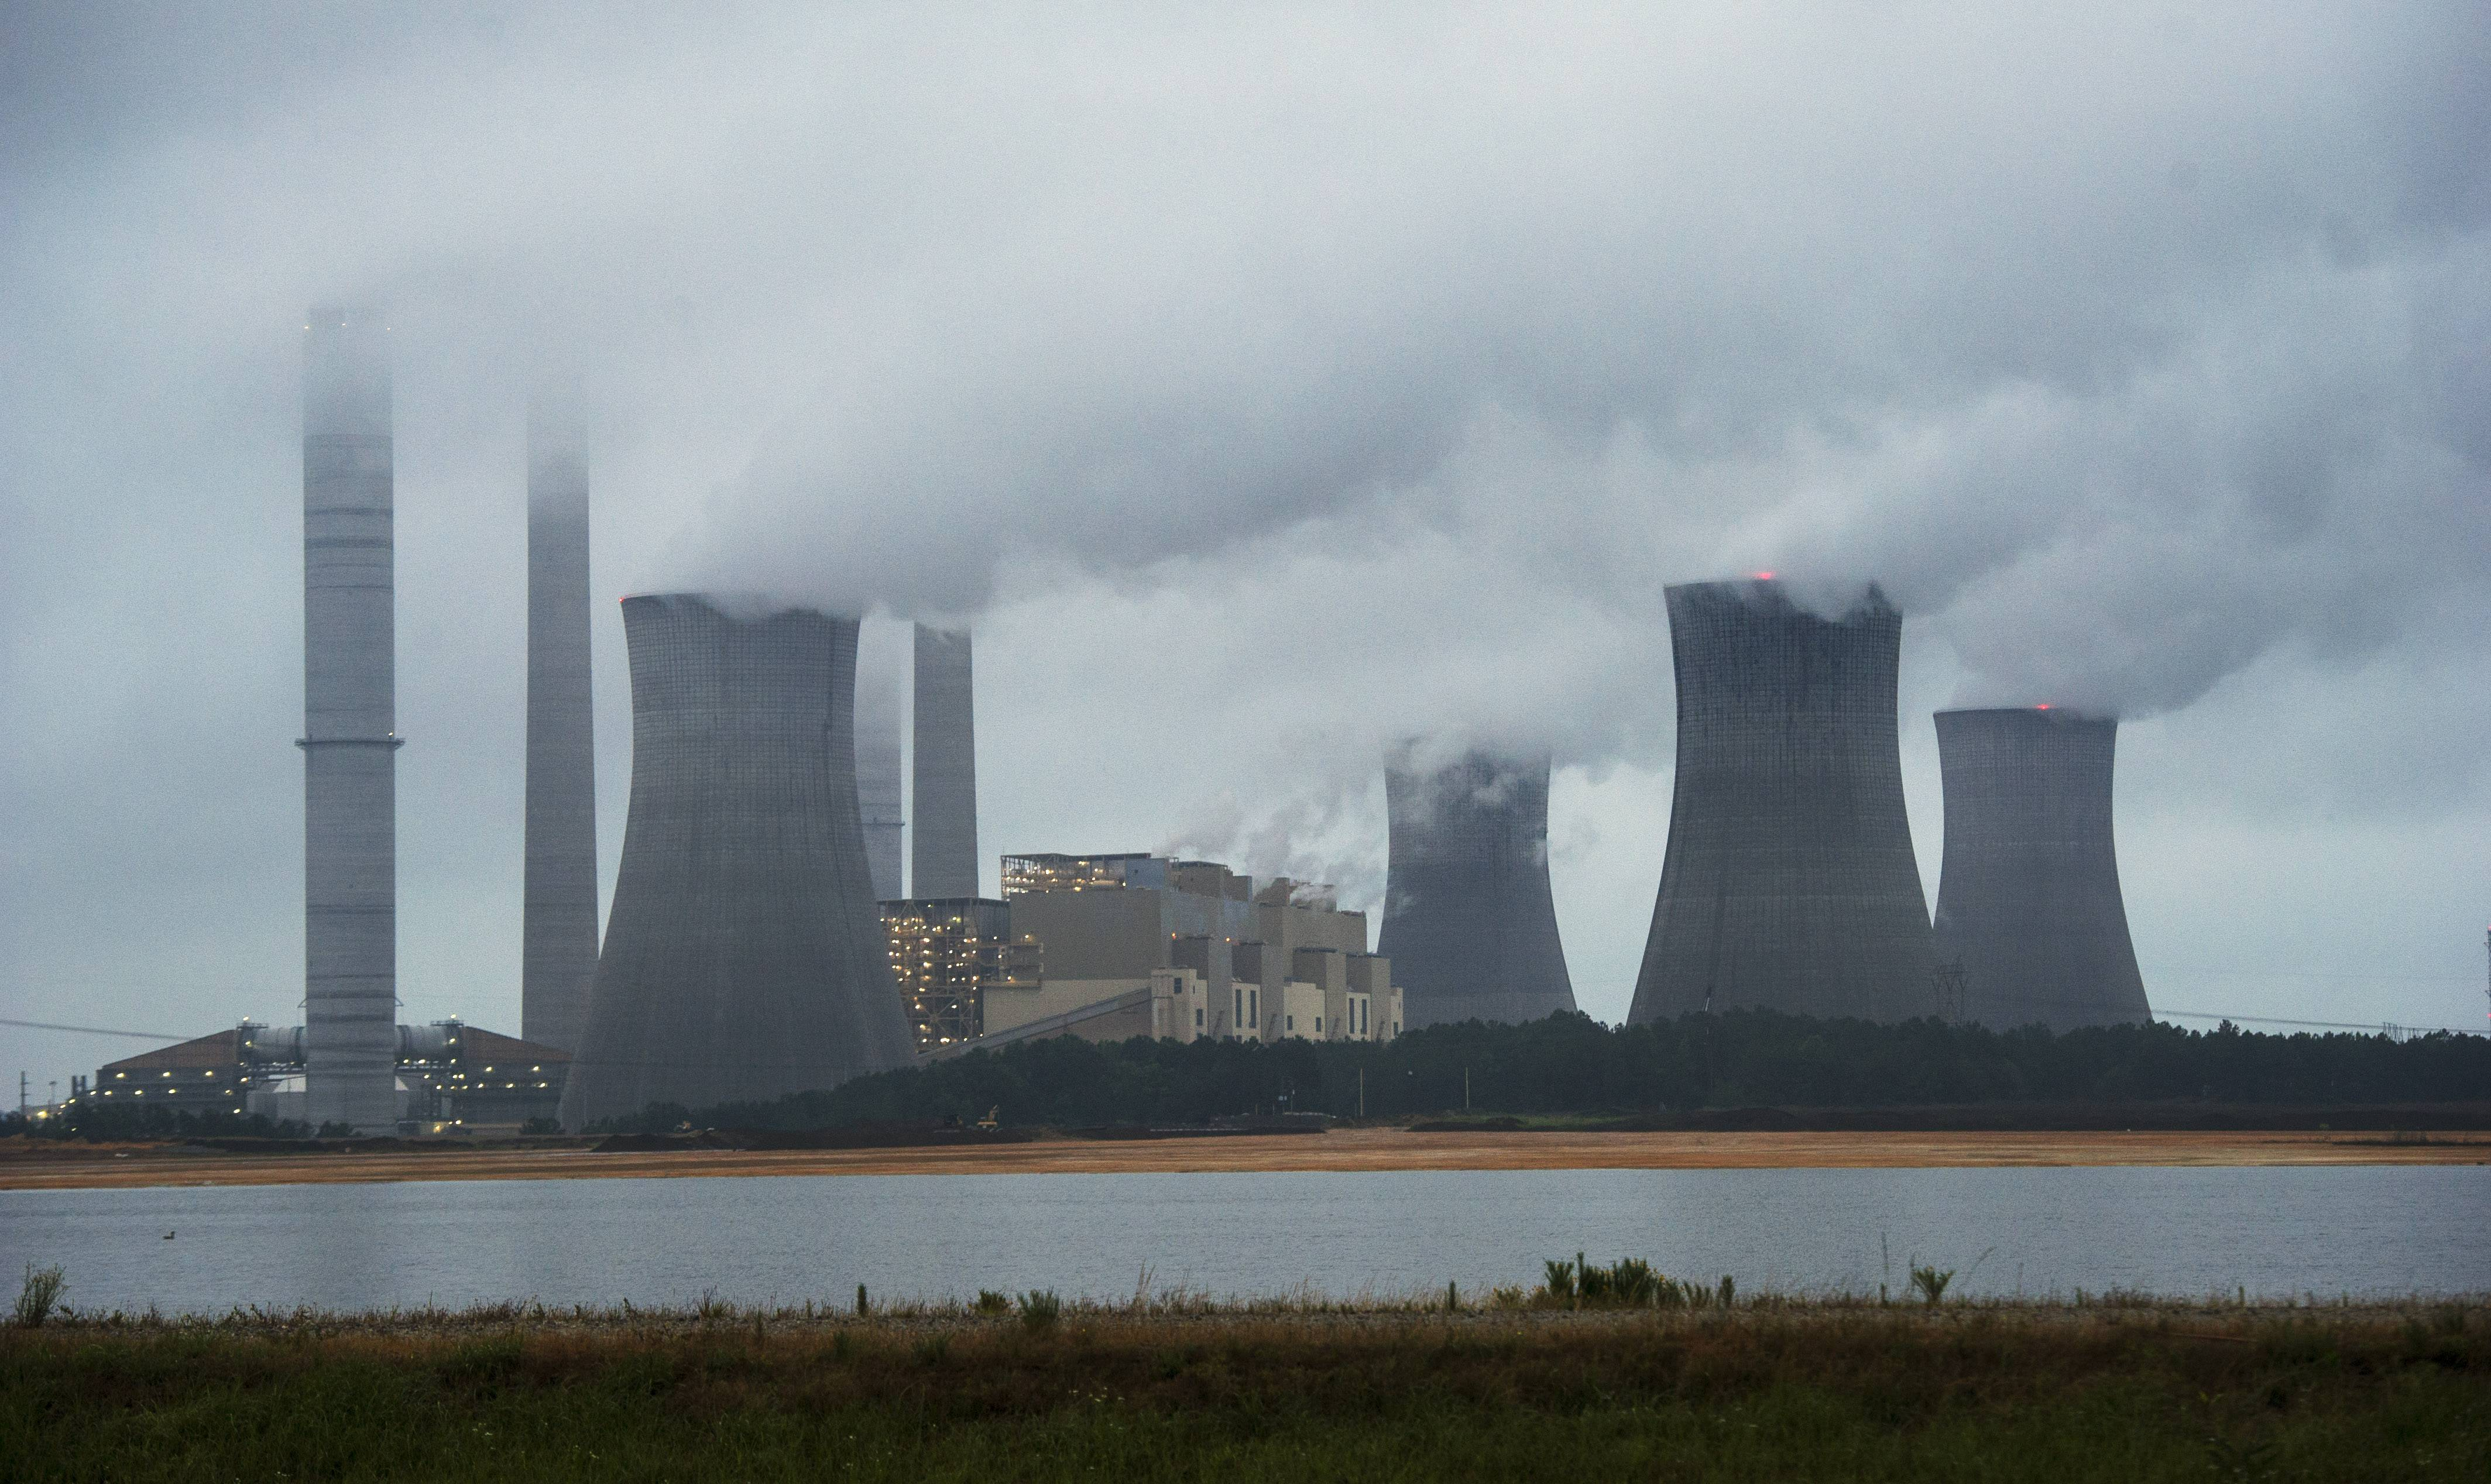 The Obama administration unveiled a plan Monday to cut carbon dioxide emissions from power plants by nearly a third over the next 15 years, in a sweeping initiative to curb pollutants blamed for global warming.